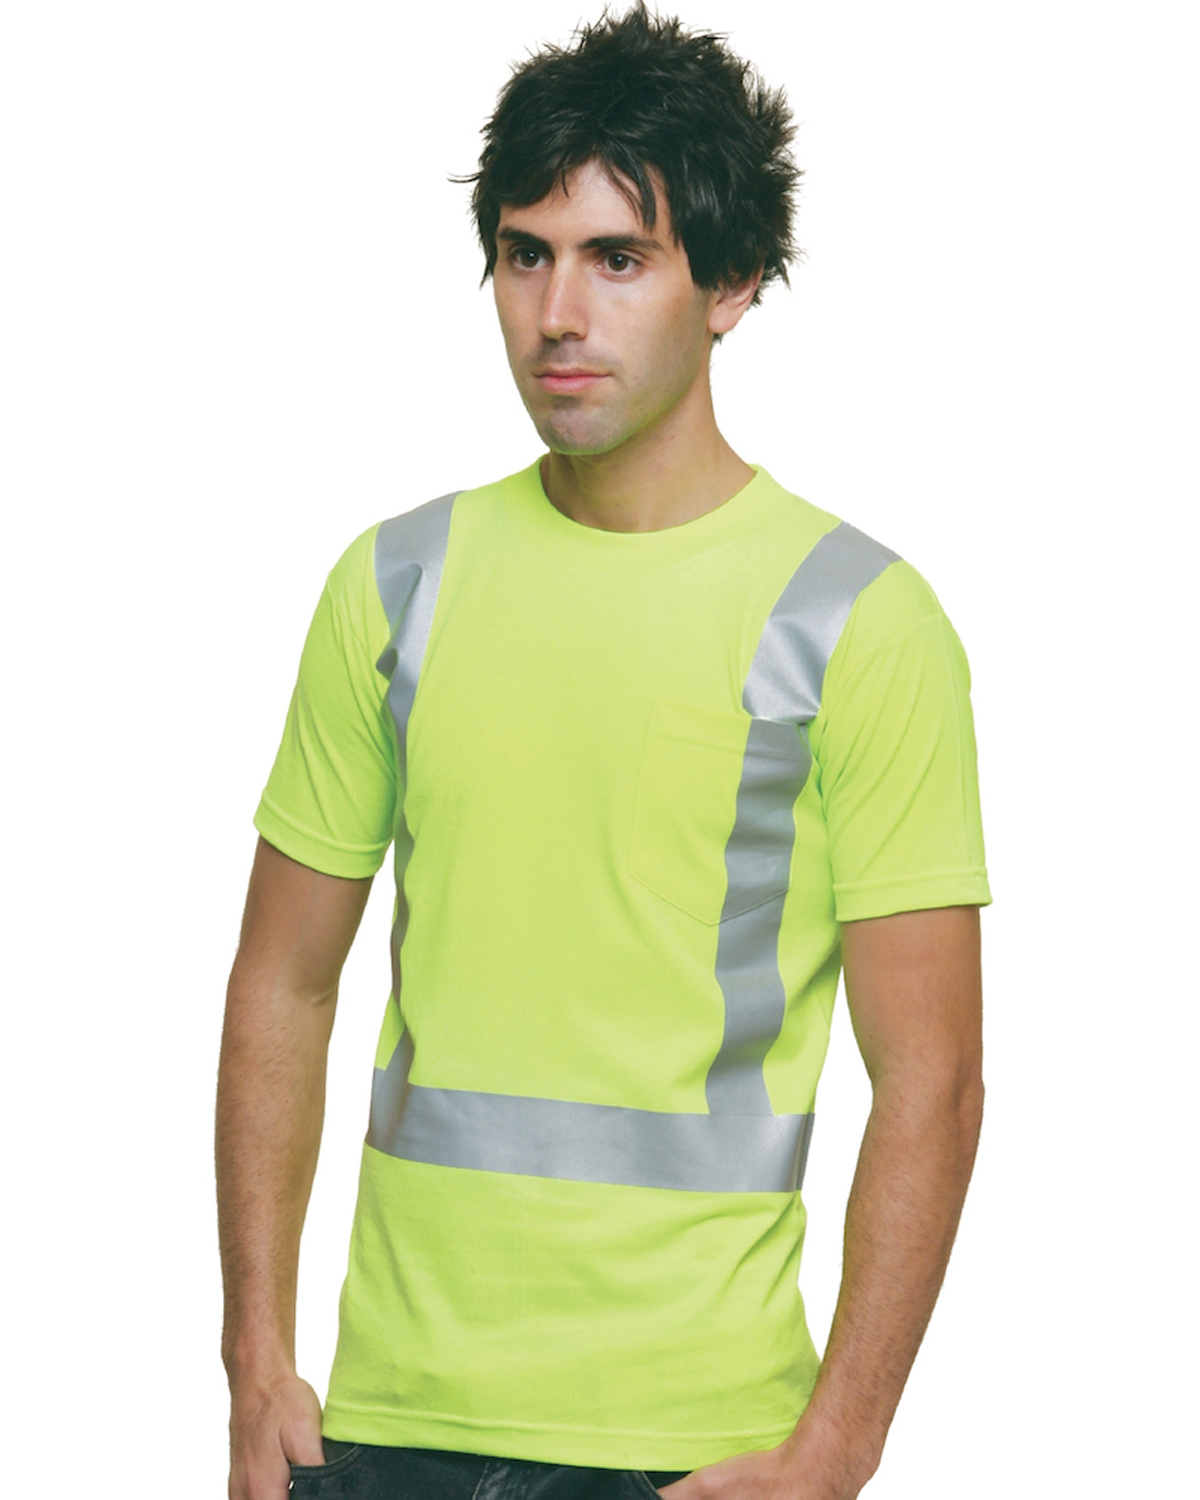 USA Made High Visibility Short Sleeve T-Shirt with Pocket